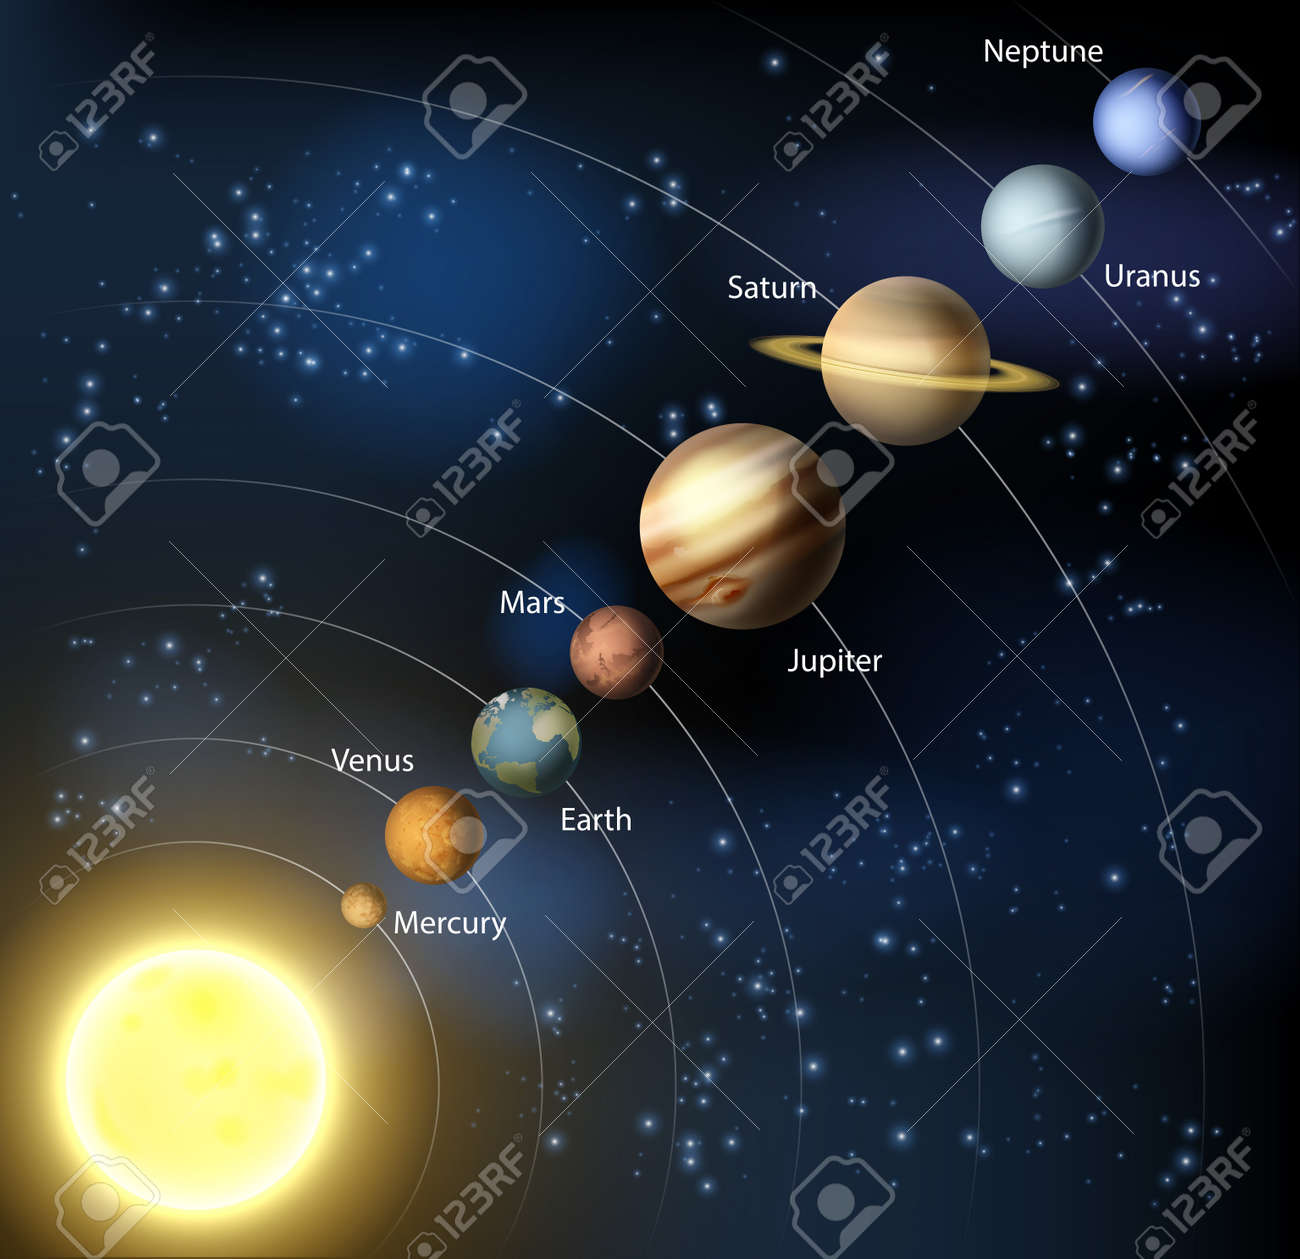 Solar system illustration of the planets in orbit around the solar system illustration of the planets in orbit around the sun with labels stock vector ccuart Choice Image